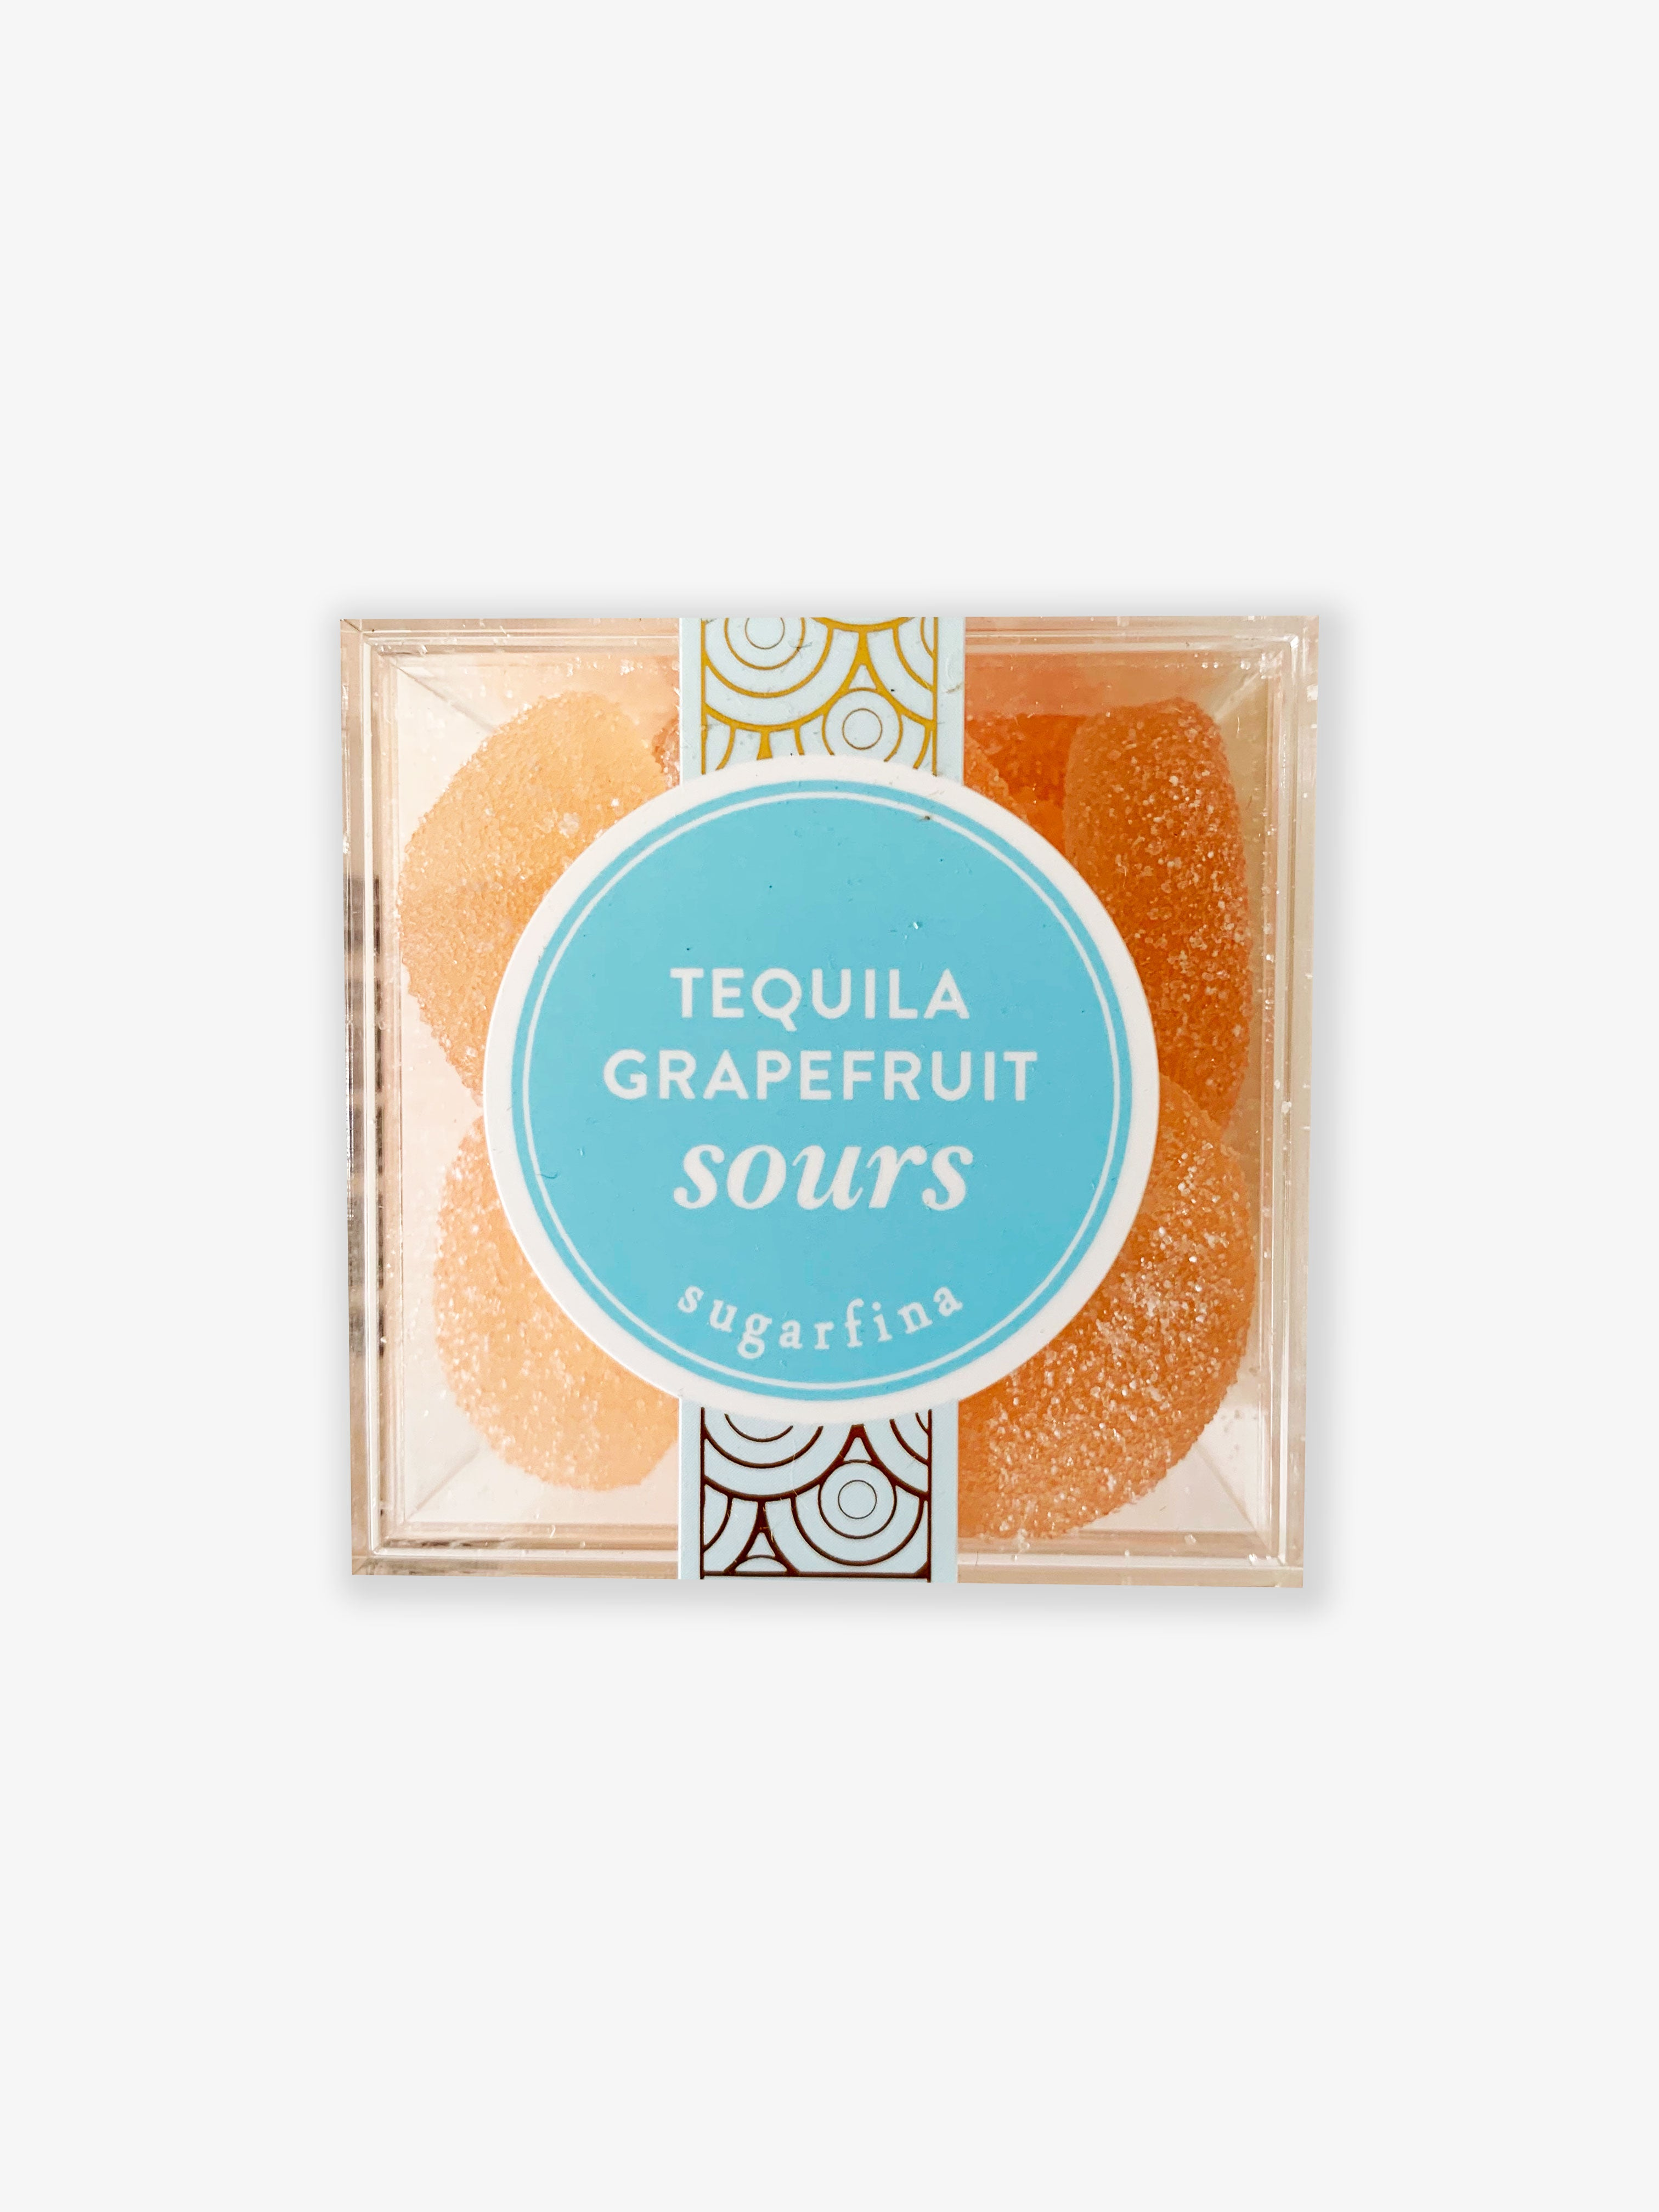 Tequila Grapefruit Sours